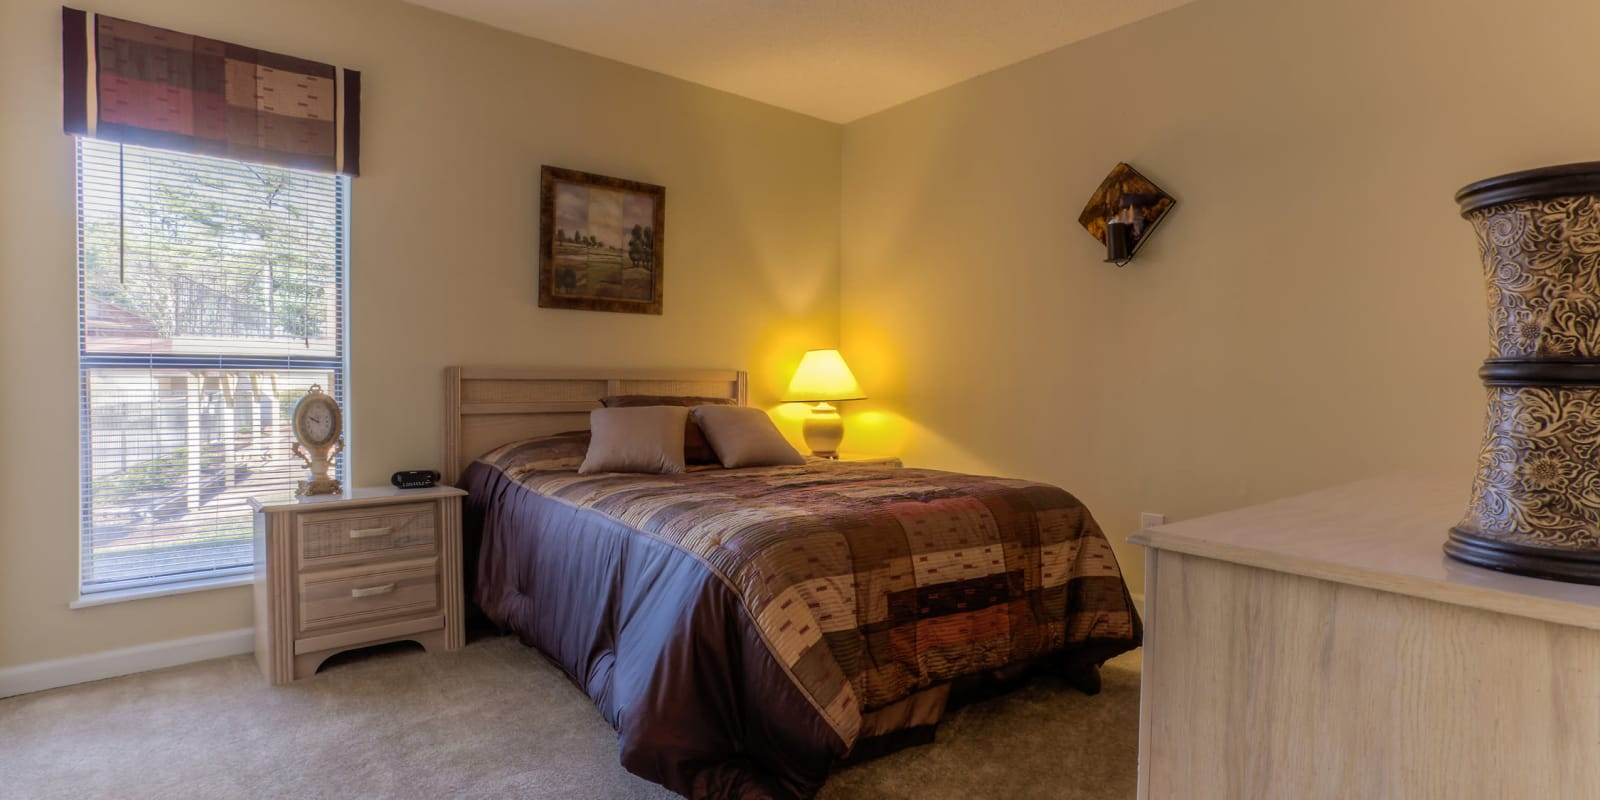 Spacious bedroom with a large window and plush carpeting at Enclave at North Point Apartment Homes in Winston Salem, North Carolina